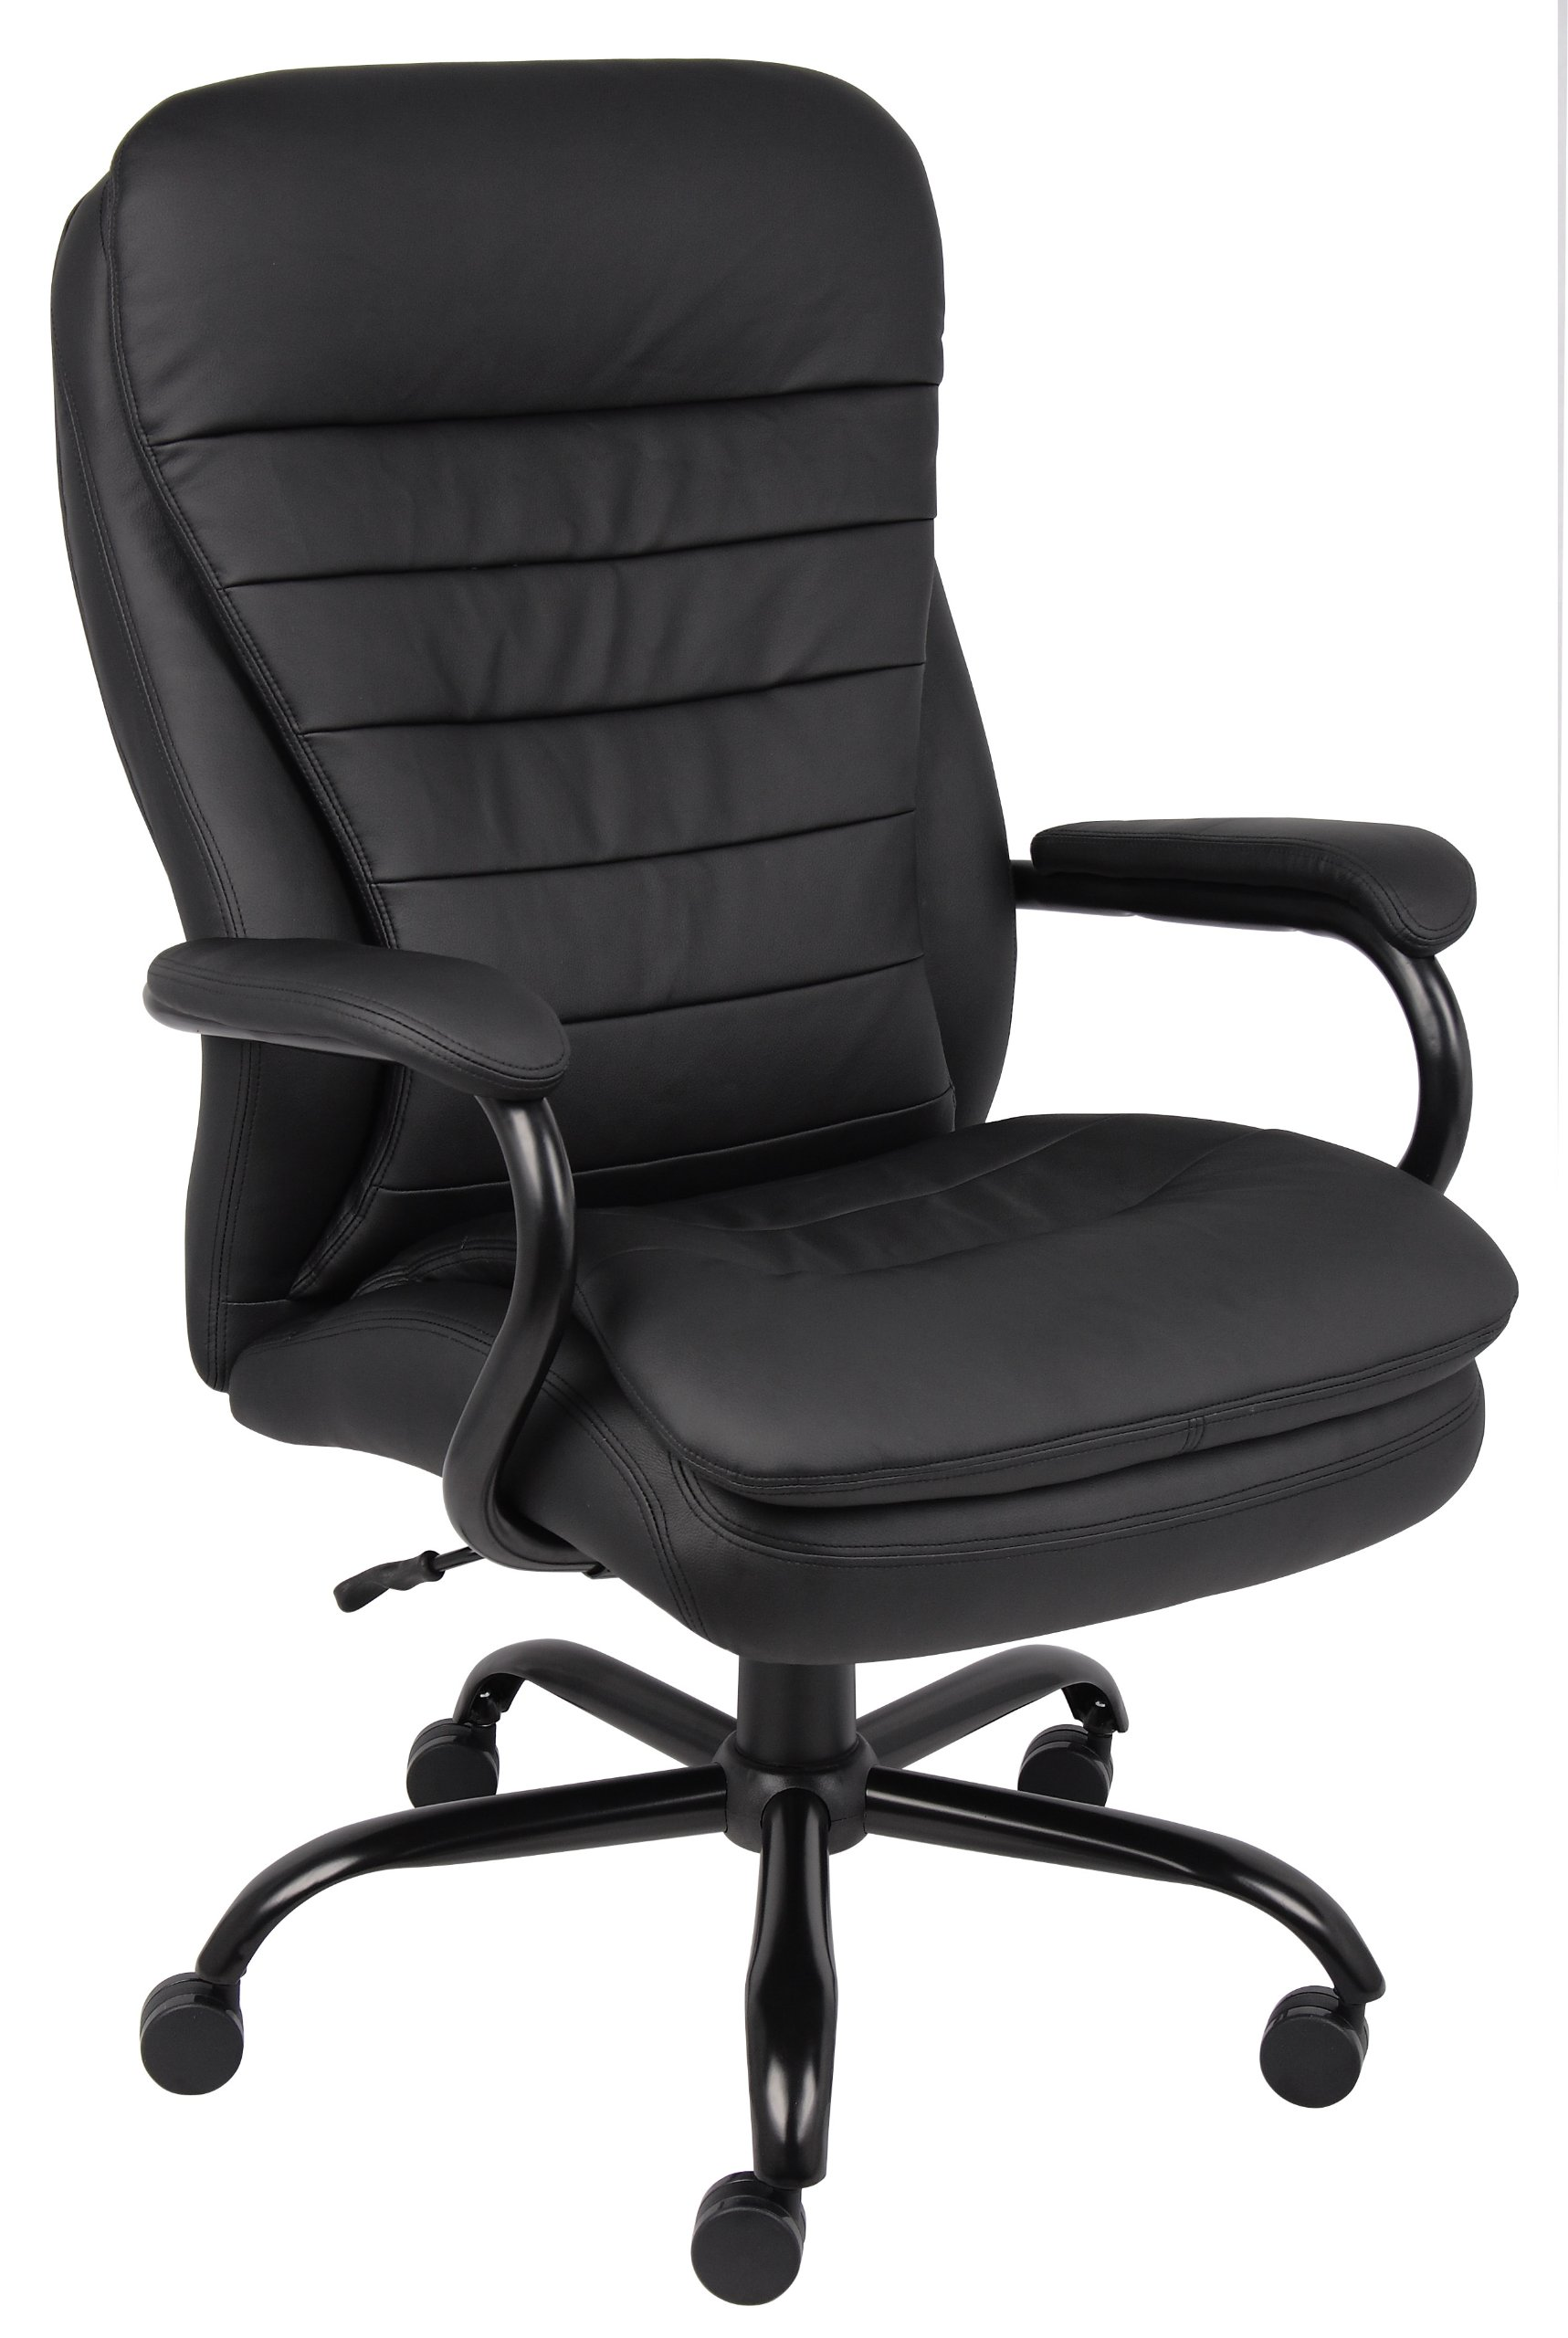 Boss Office Products B991-CP Heavy Duty Double Plush LeatherPlus Chair with 350lbs Weight Capacity in Black